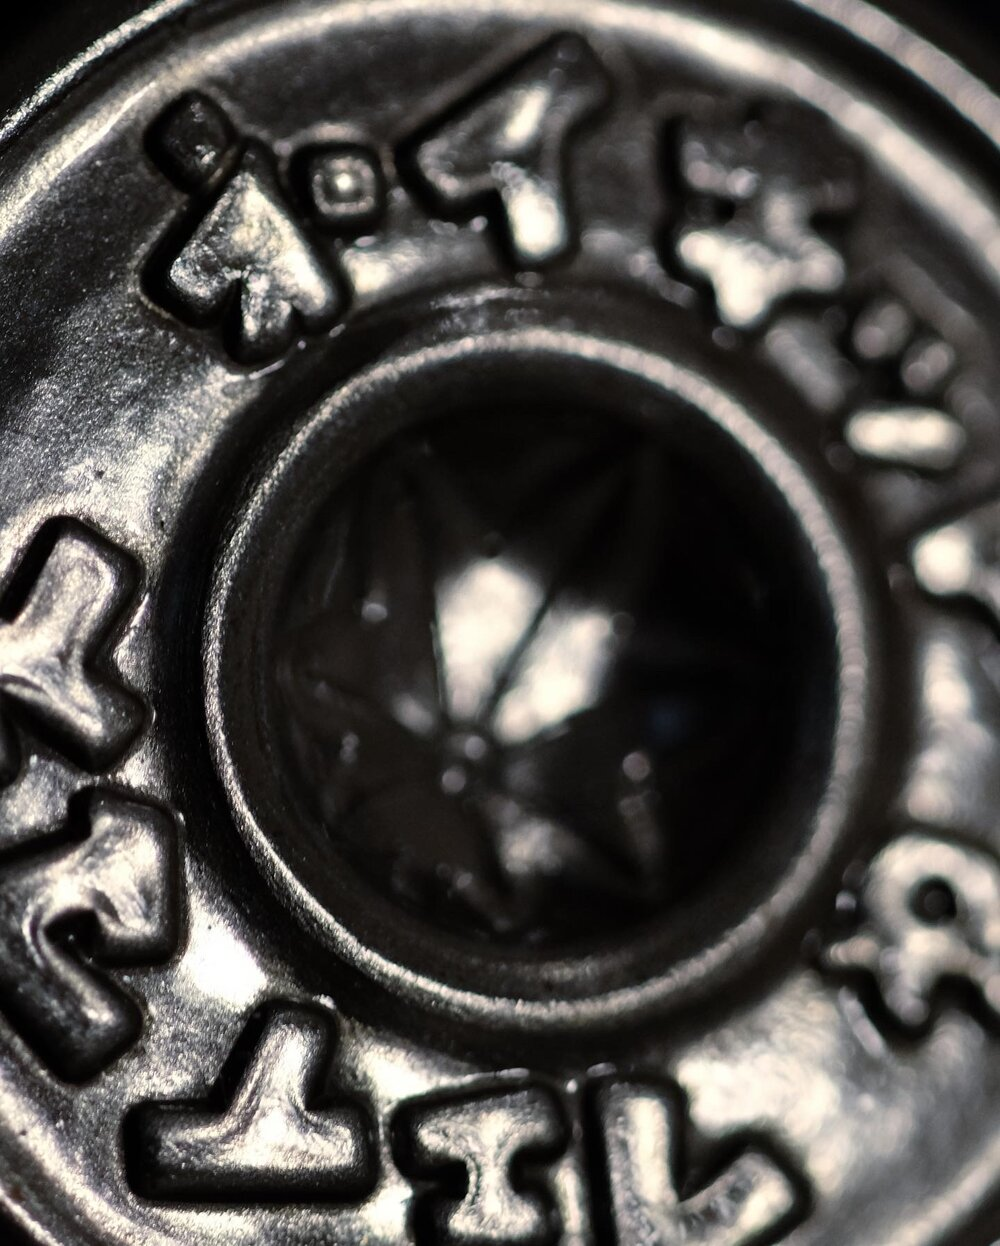 MIJ8 - Iron Button Close Up